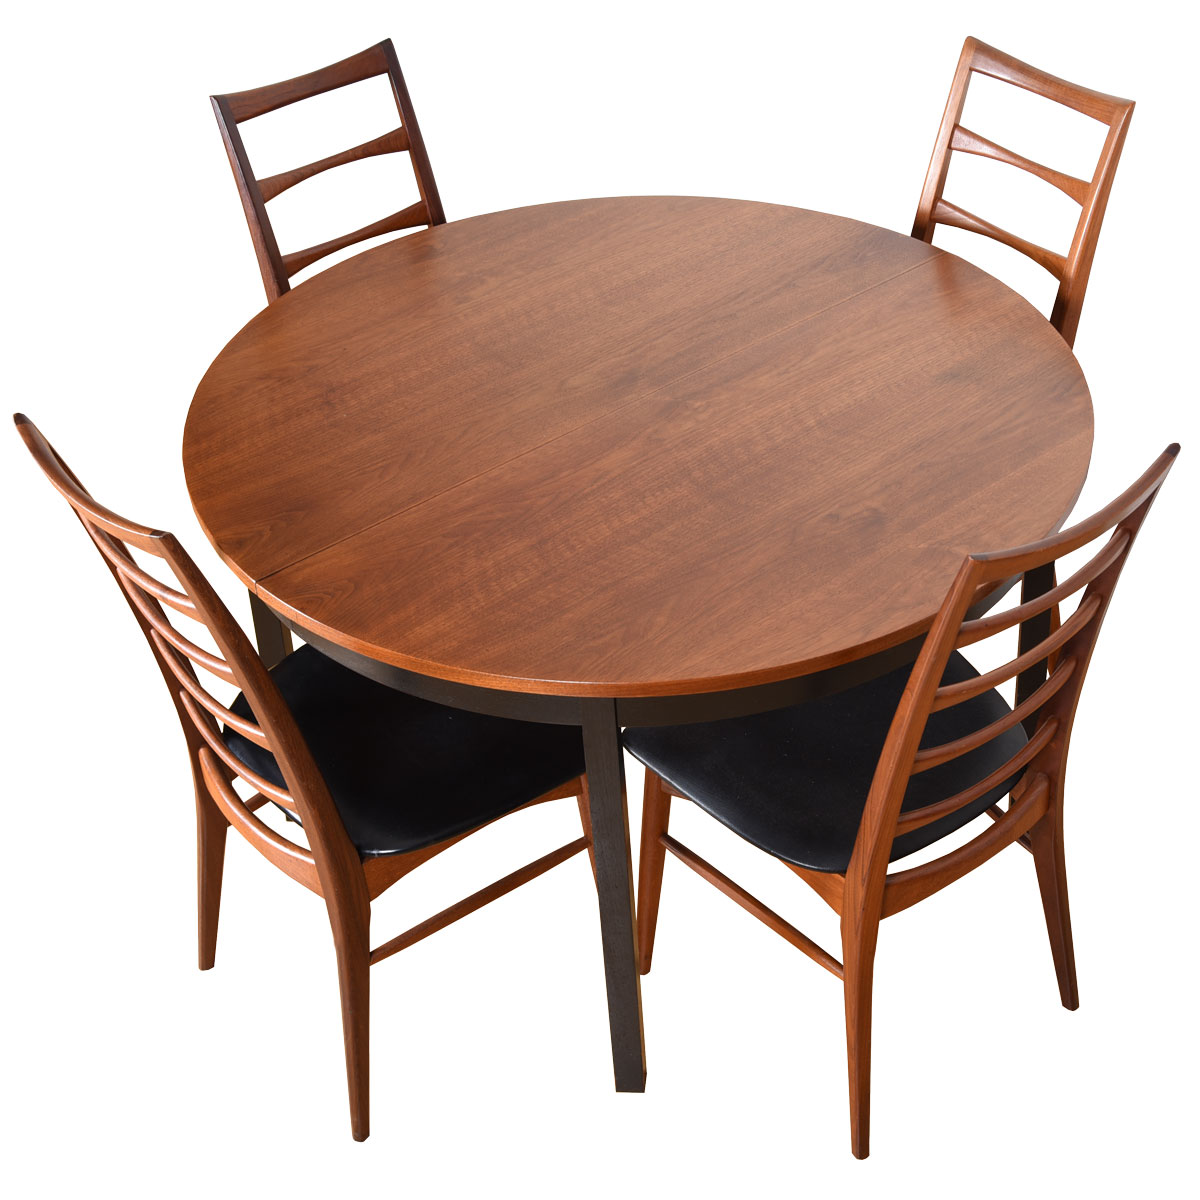 Round to Oval Expanding Table with Walnut Table Top and Ebonized Legs